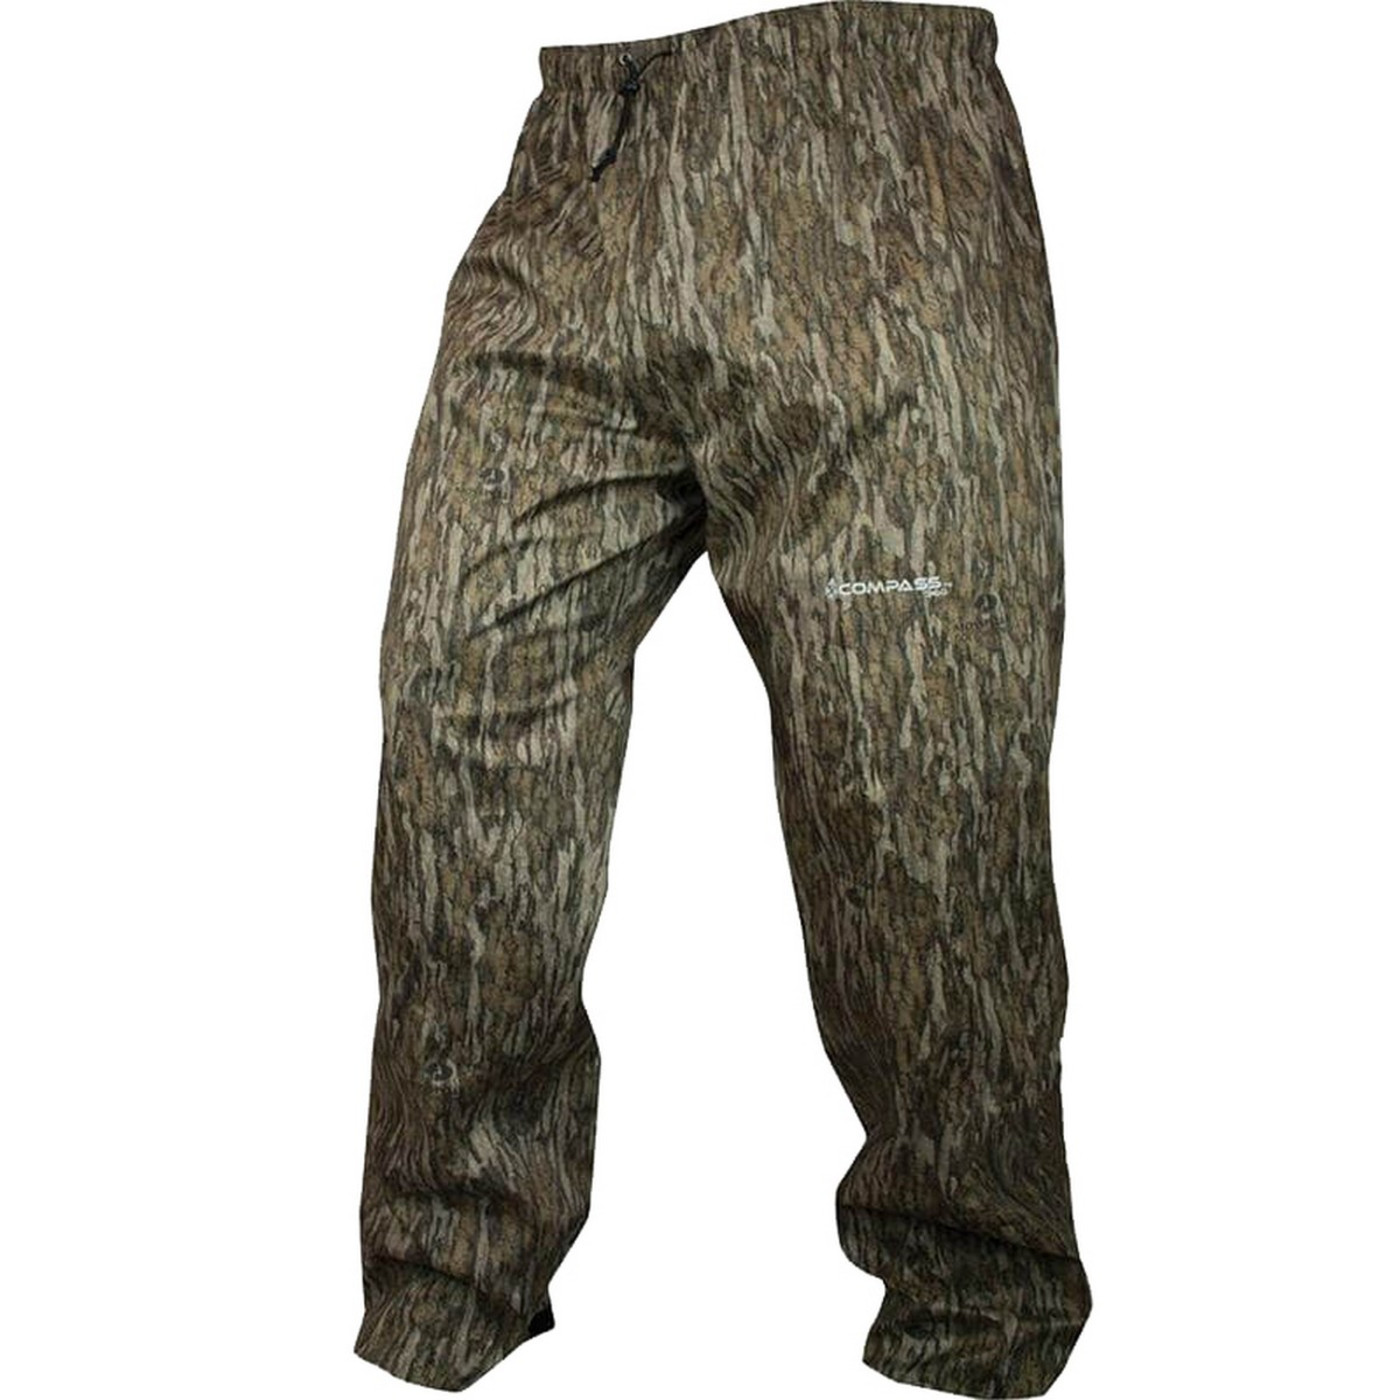 Compass 360 HydroTek Rain Pant in Mossy Oak Bottomland